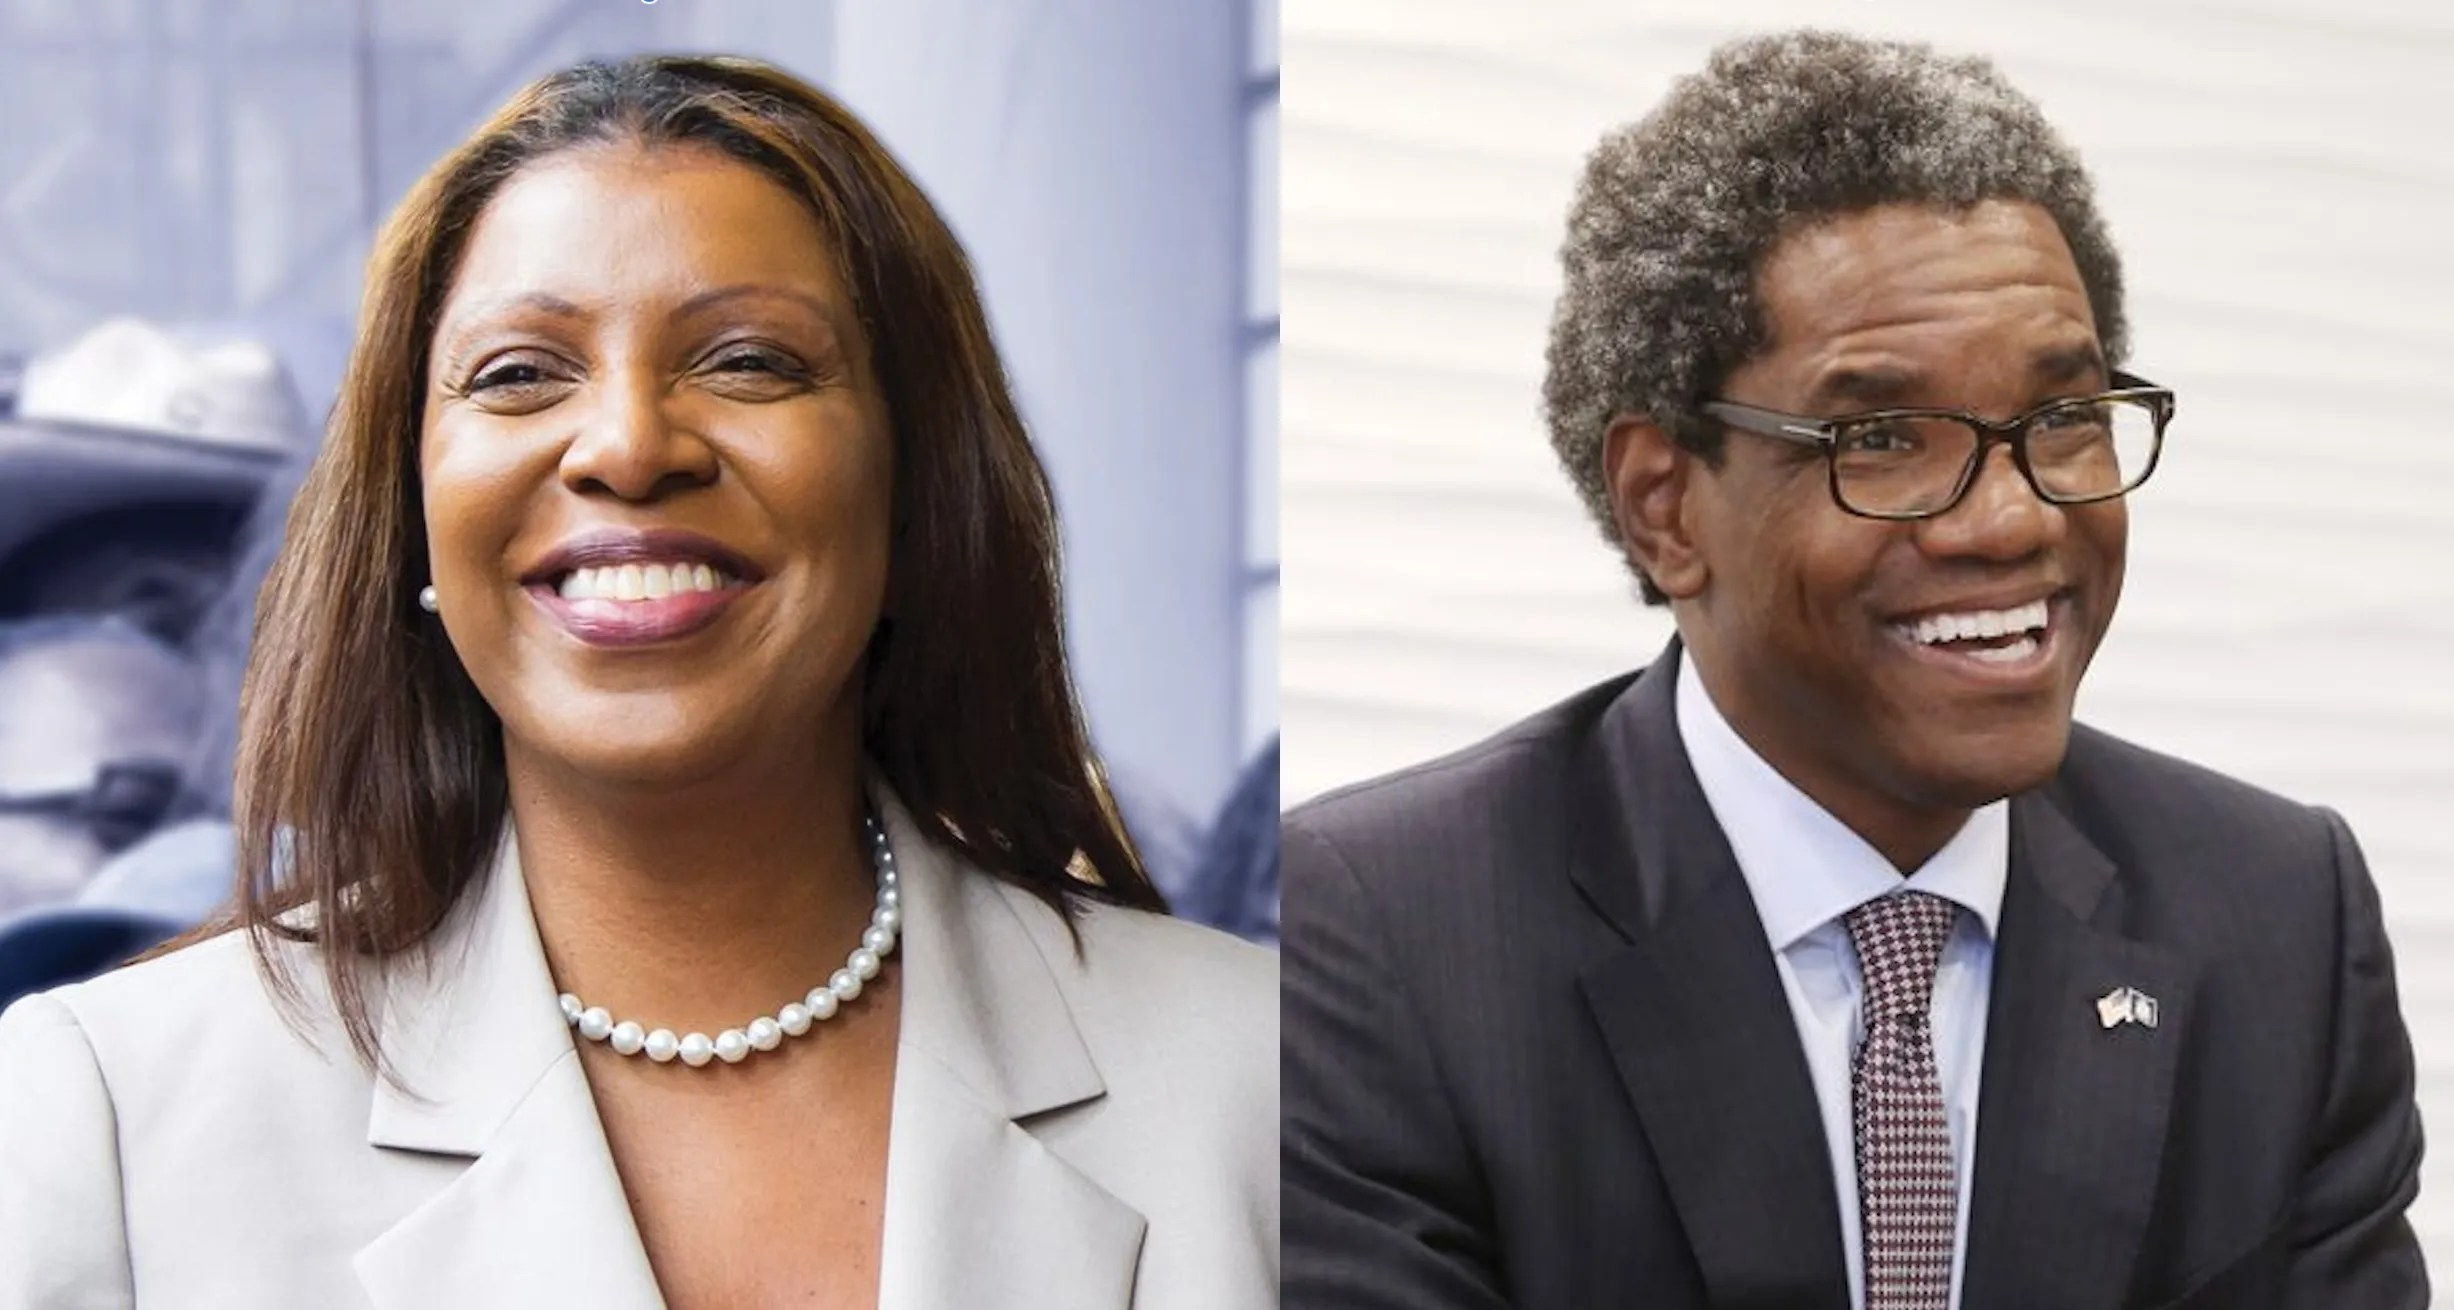 As counsel and chief of staff to state assembly members. In Open Seat Tish James And Keith Wofford Battle For Attorney General